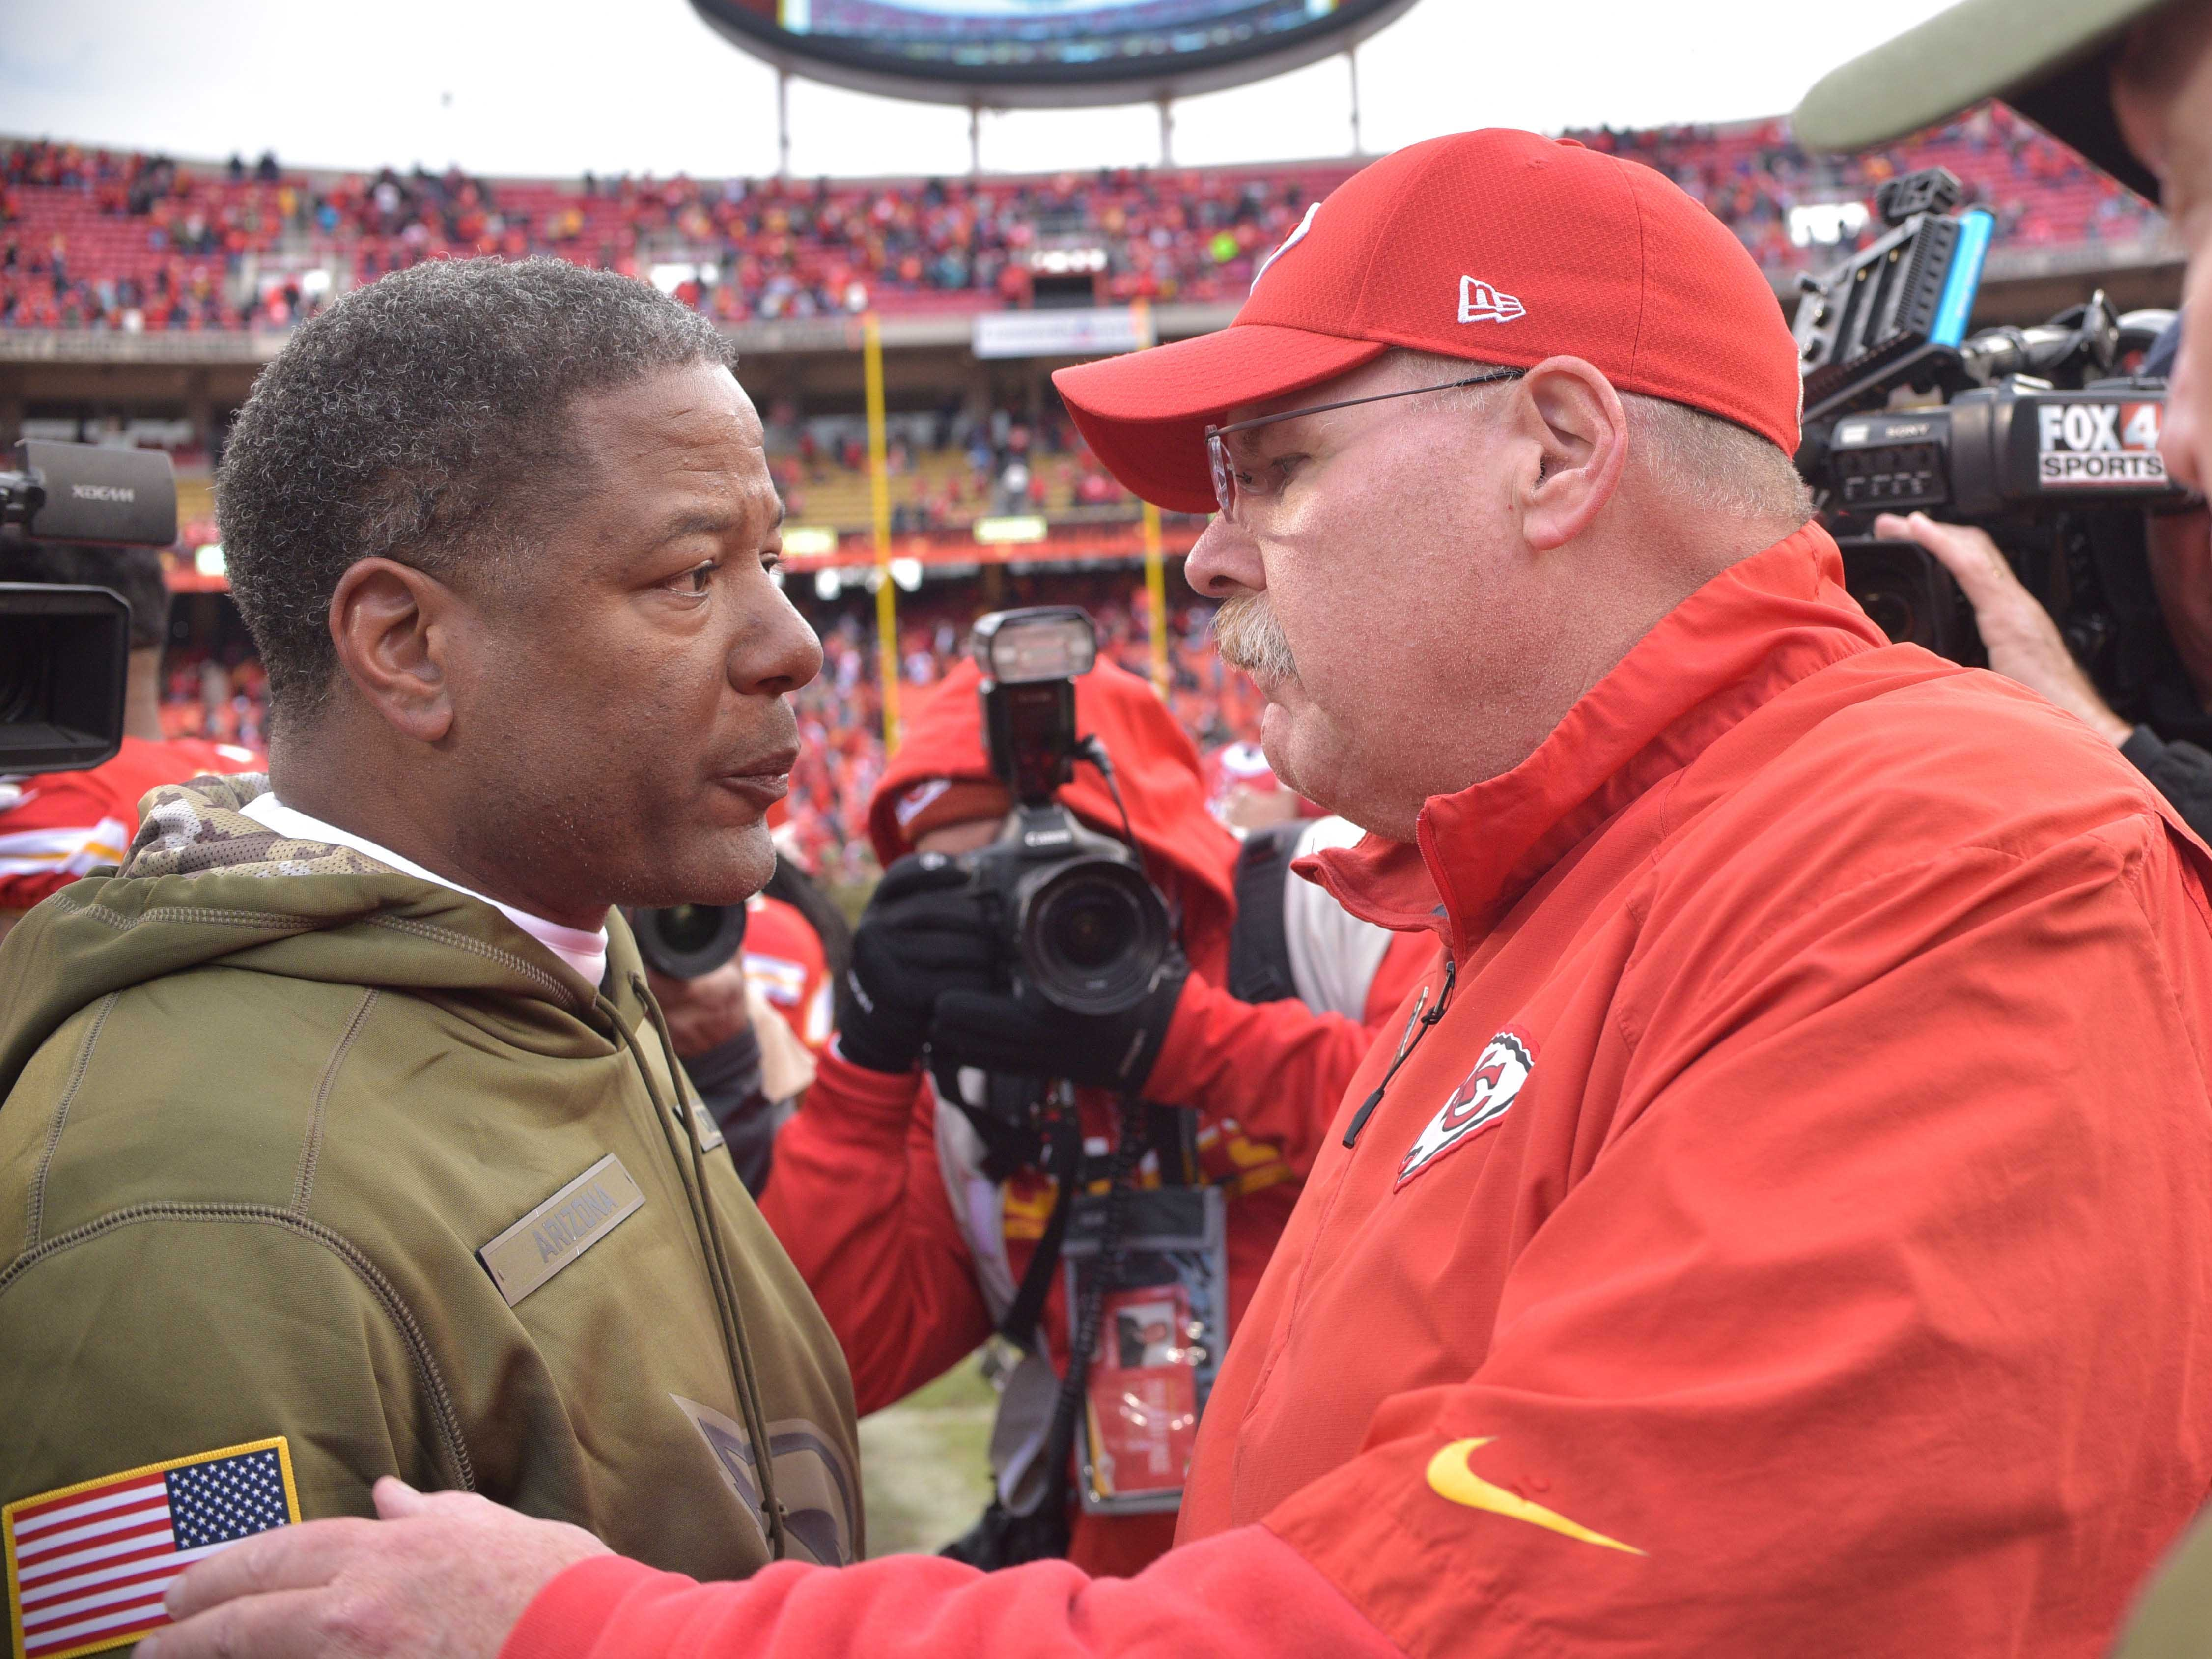 Nov 11, 2018; Kansas City, MO, USA; Arizona Cardinals head coach Steve Wilks congratulates Kansas City Chiefs head coach Andy Reid after the game at Arrowhead Stadium. The Chiefs won 26-14. Mandatory Credit: Denny Medley-USA TODAY Sports